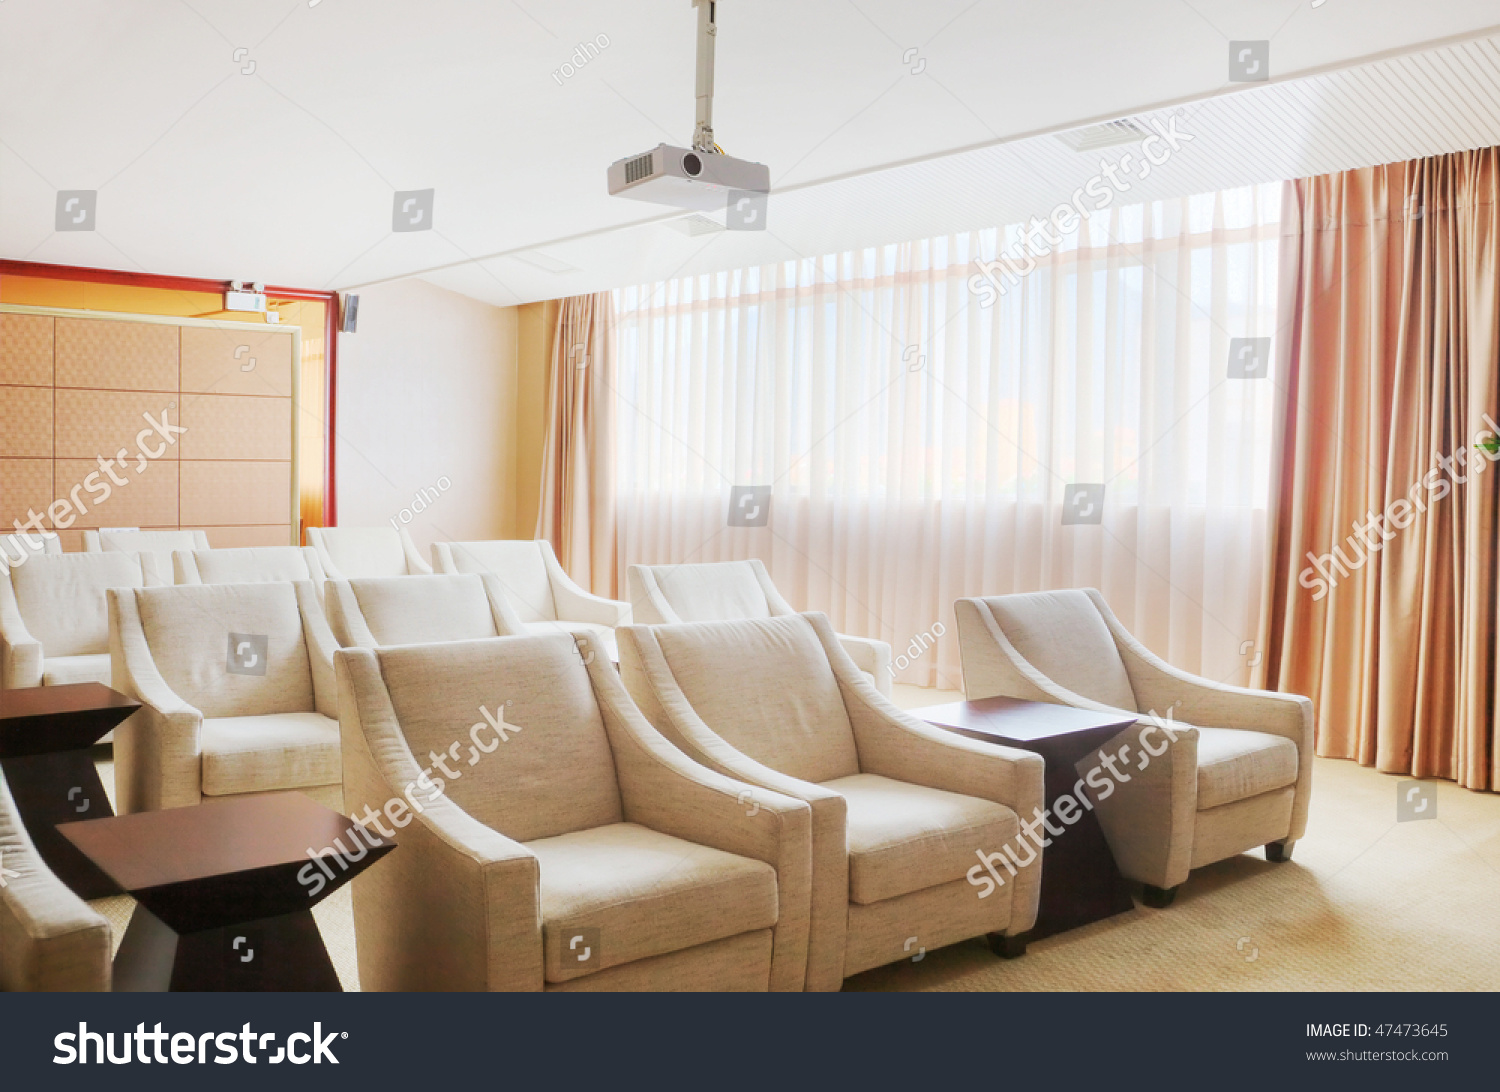 Small Video Conference Room Sofas Movie Stock Photo (Royalty Free ...